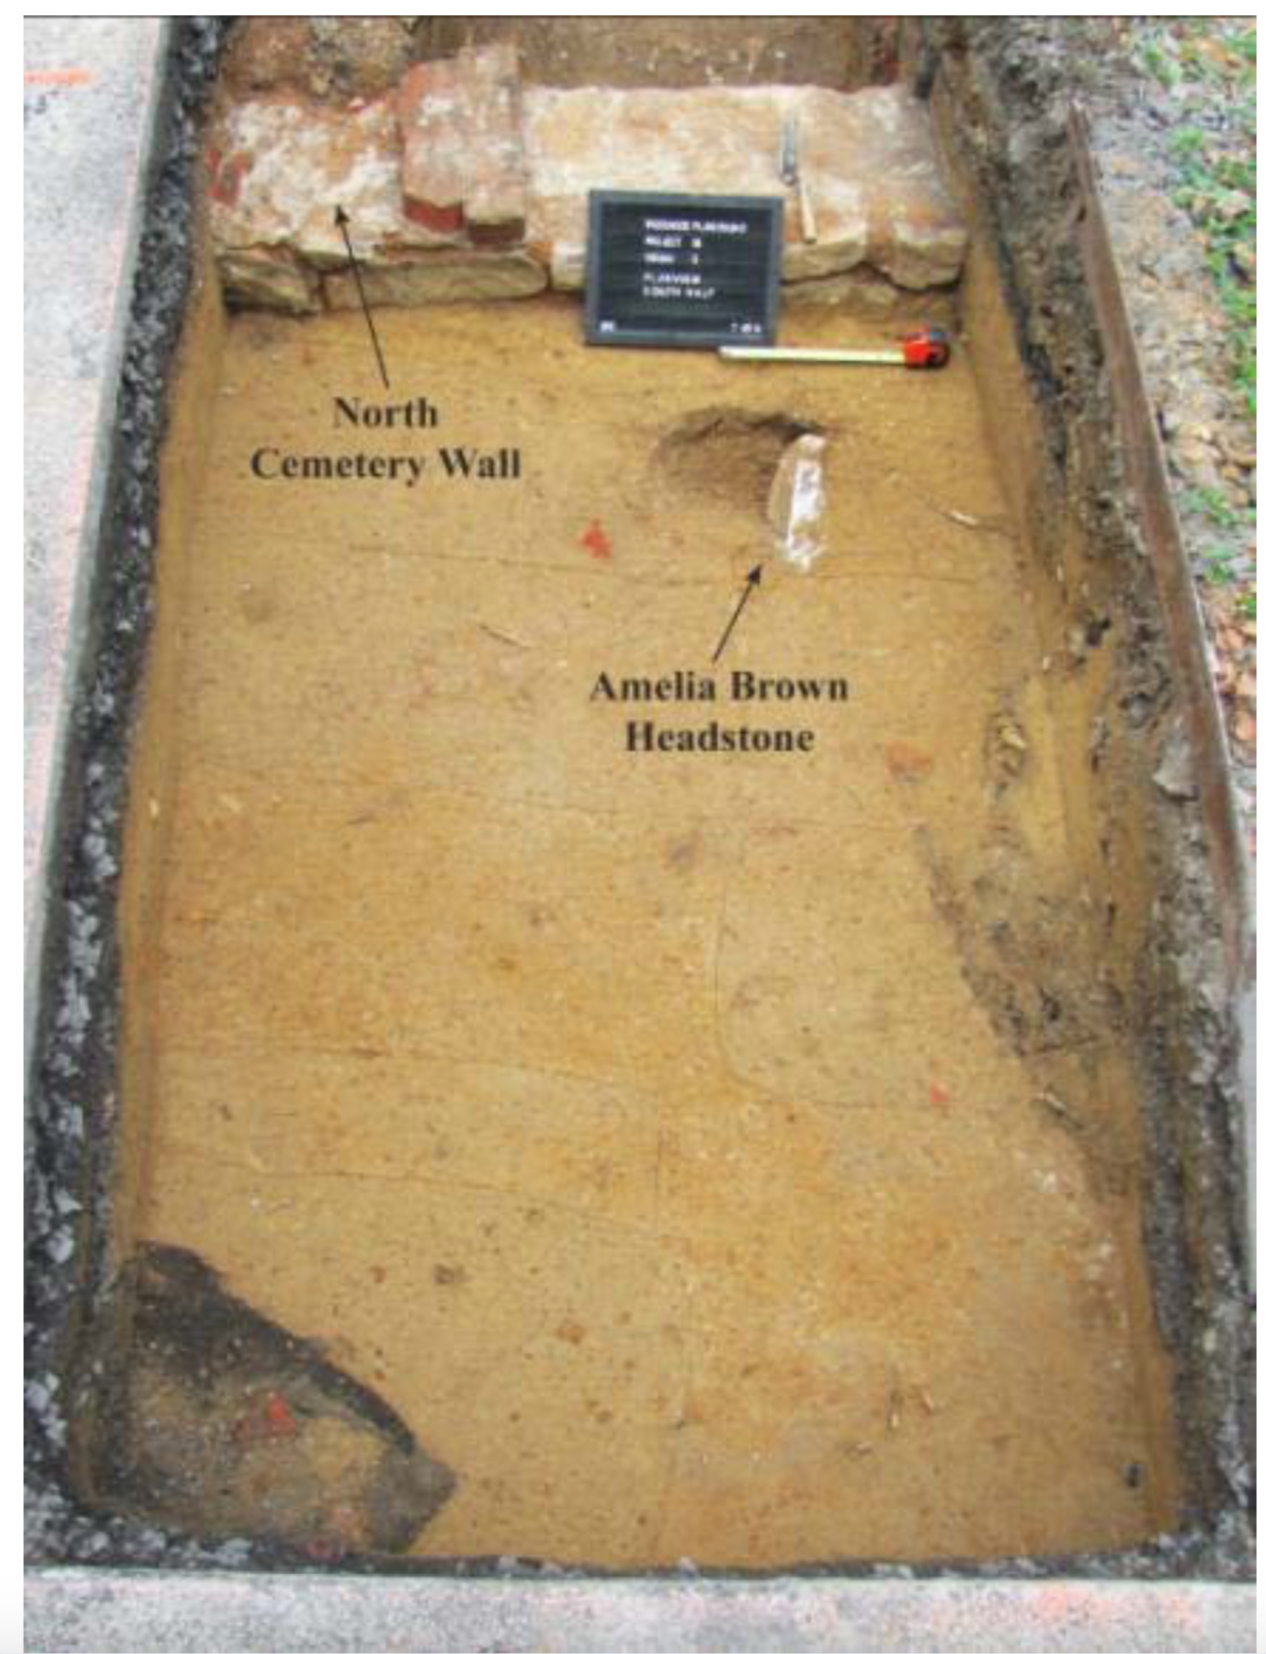 Photograph of the unearthing of Amelia Brown's headstone in 2013